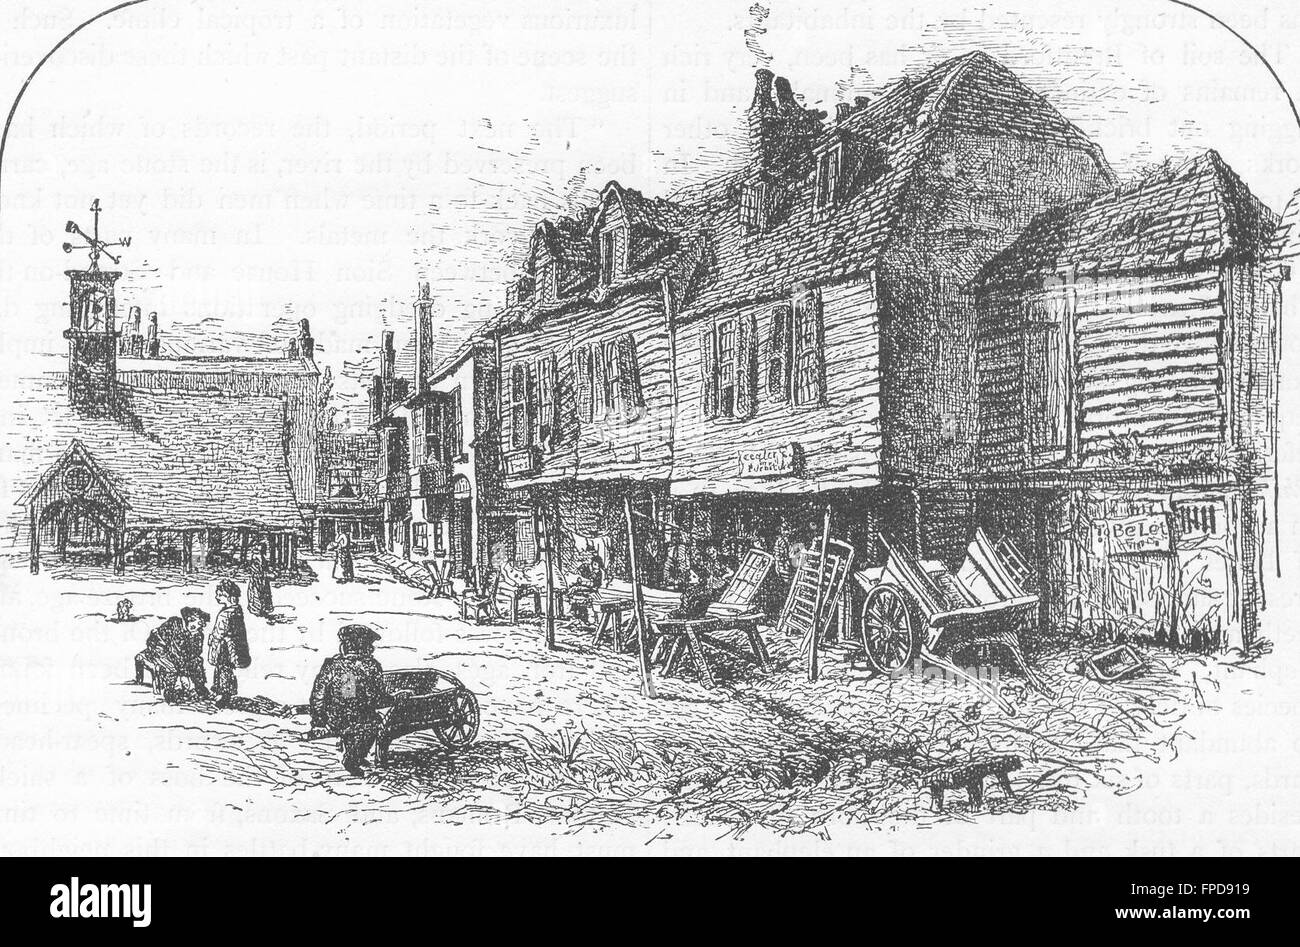 BRENTFORD: The Stables of the ' Three Pigeons,' Brentford, antique print 1888 - Stock Image